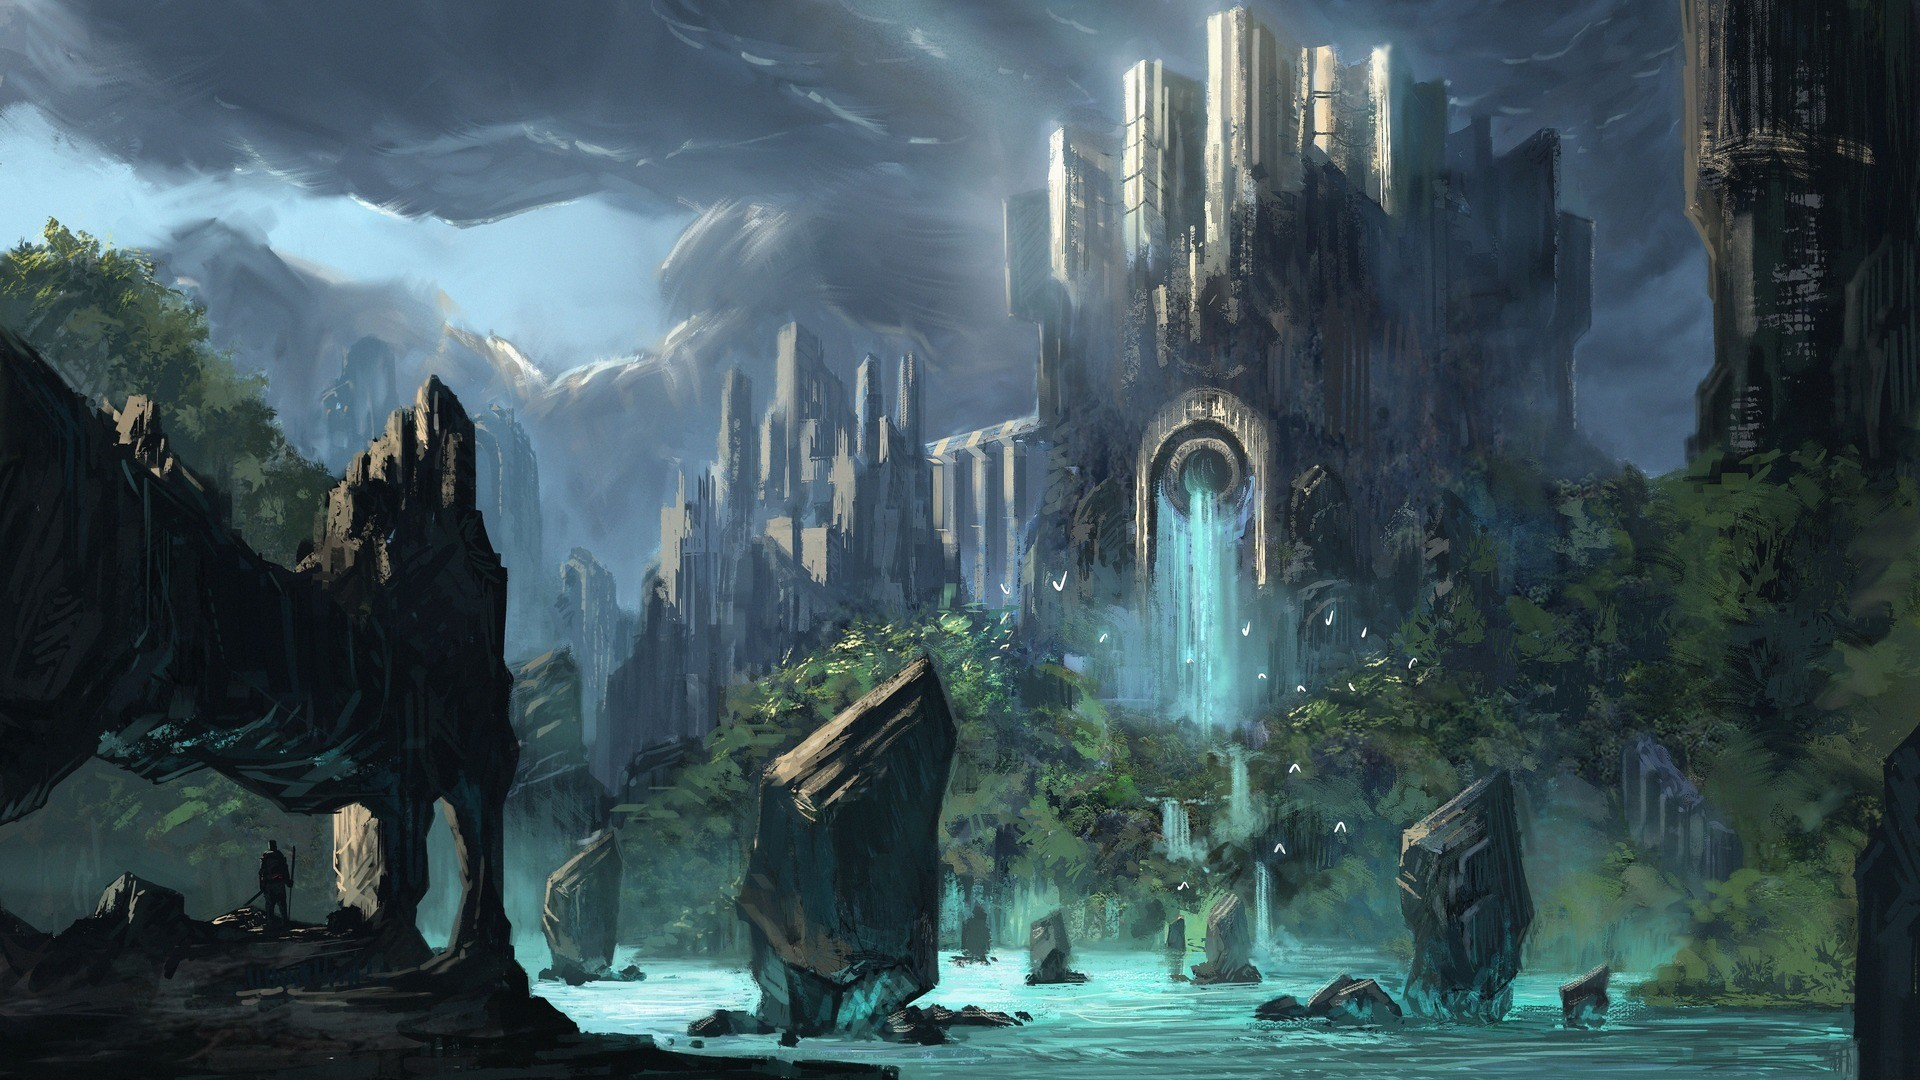 fantasy hd wallpapers 1920x1080 (78+ images)